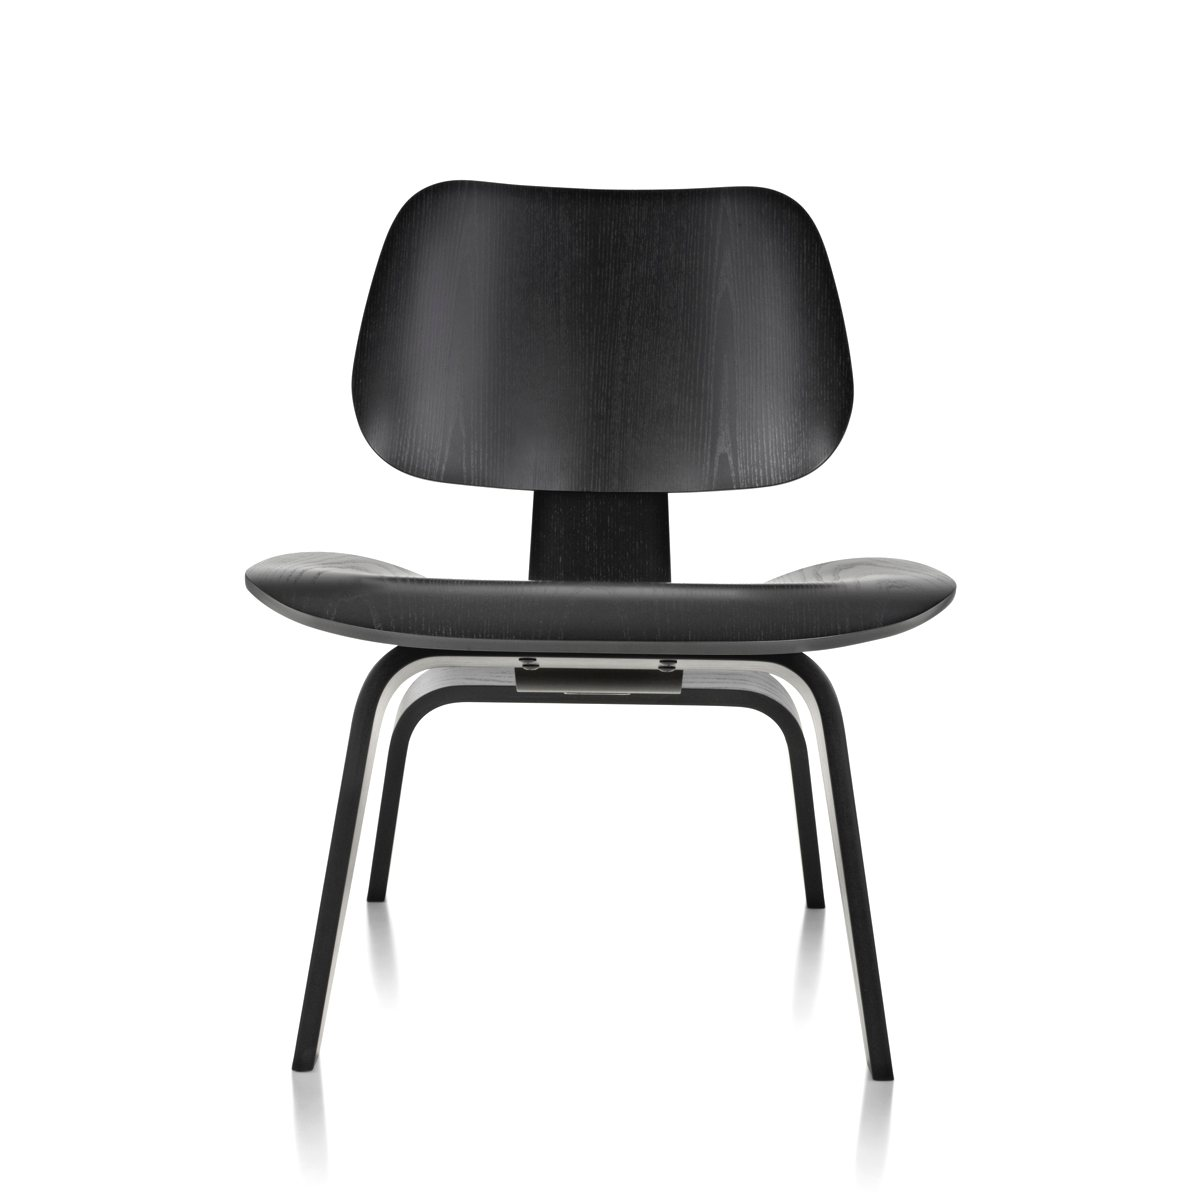 eames molded plywood lounge chair wood base by charles ray eames. Black Bedroom Furniture Sets. Home Design Ideas